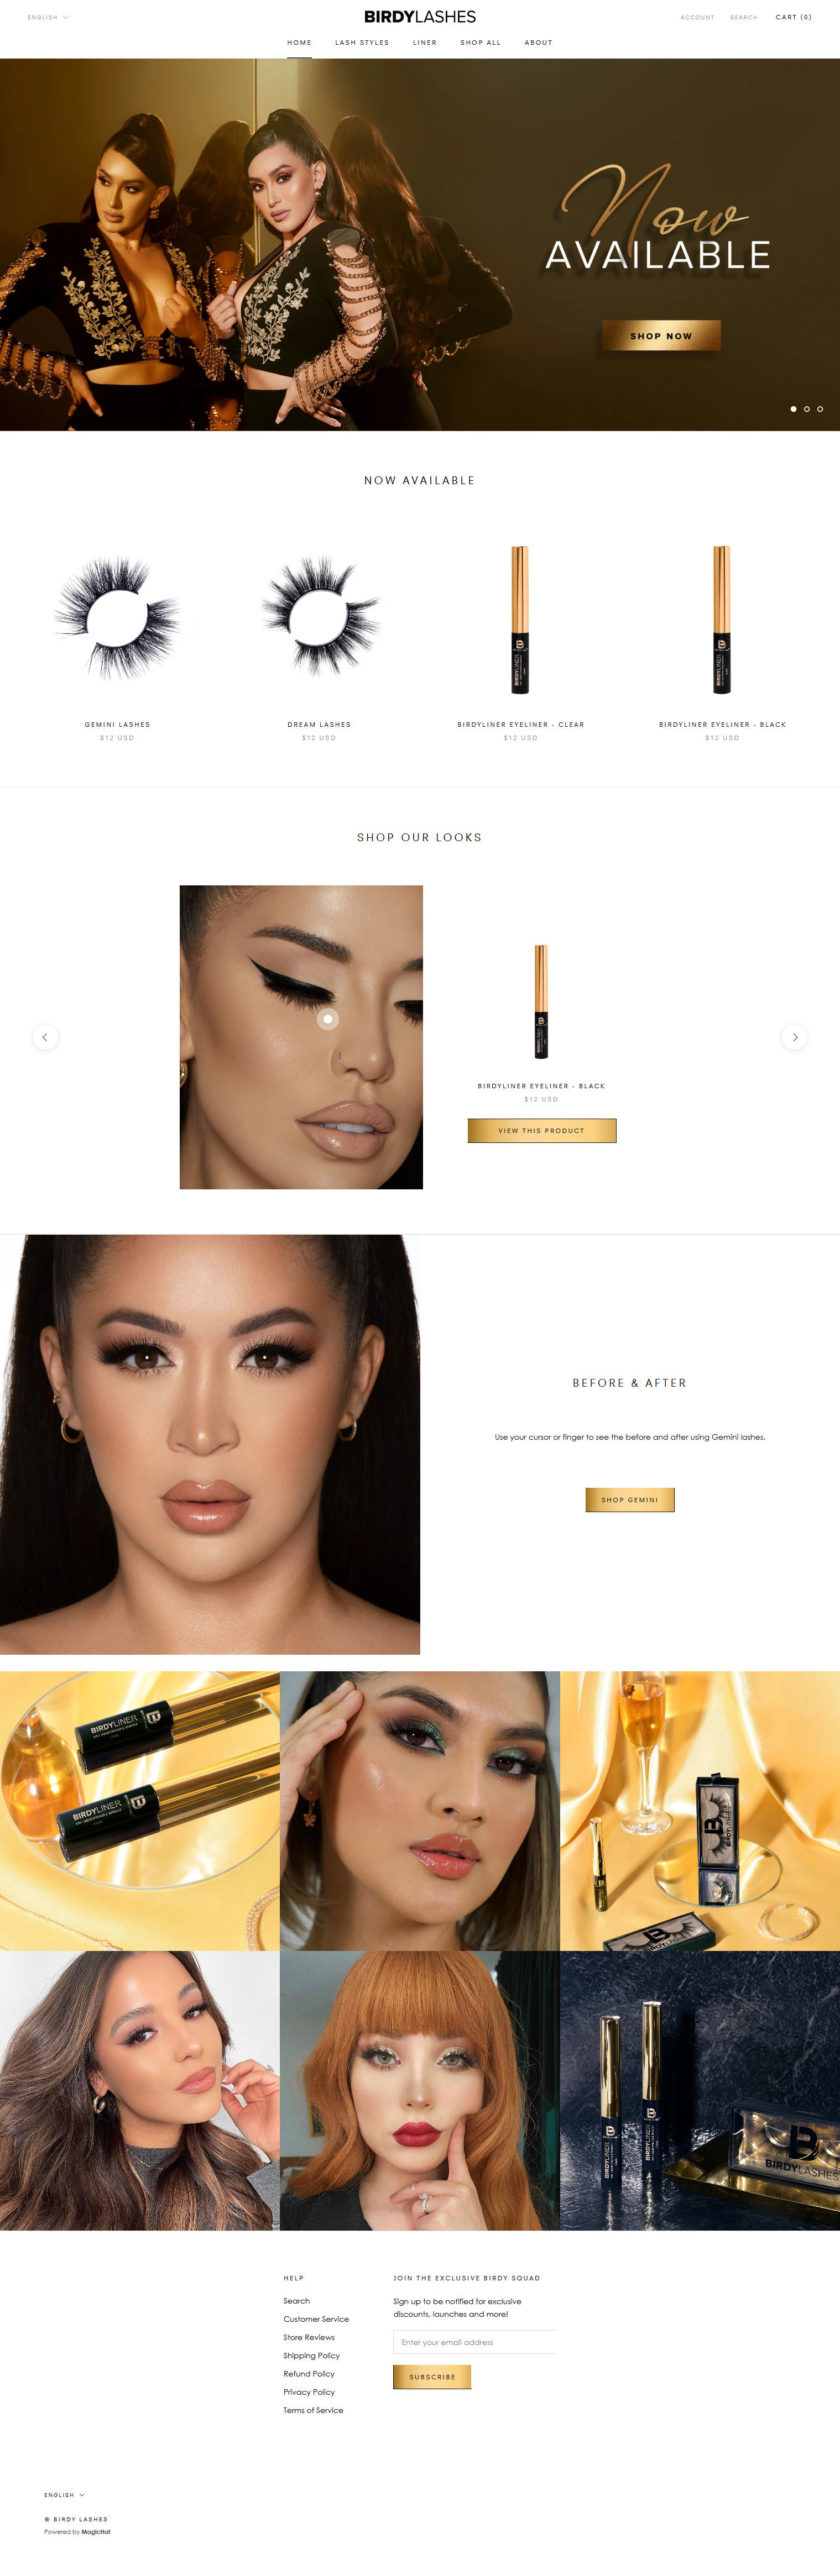 birdylashes cosmetic ecommerce website preview